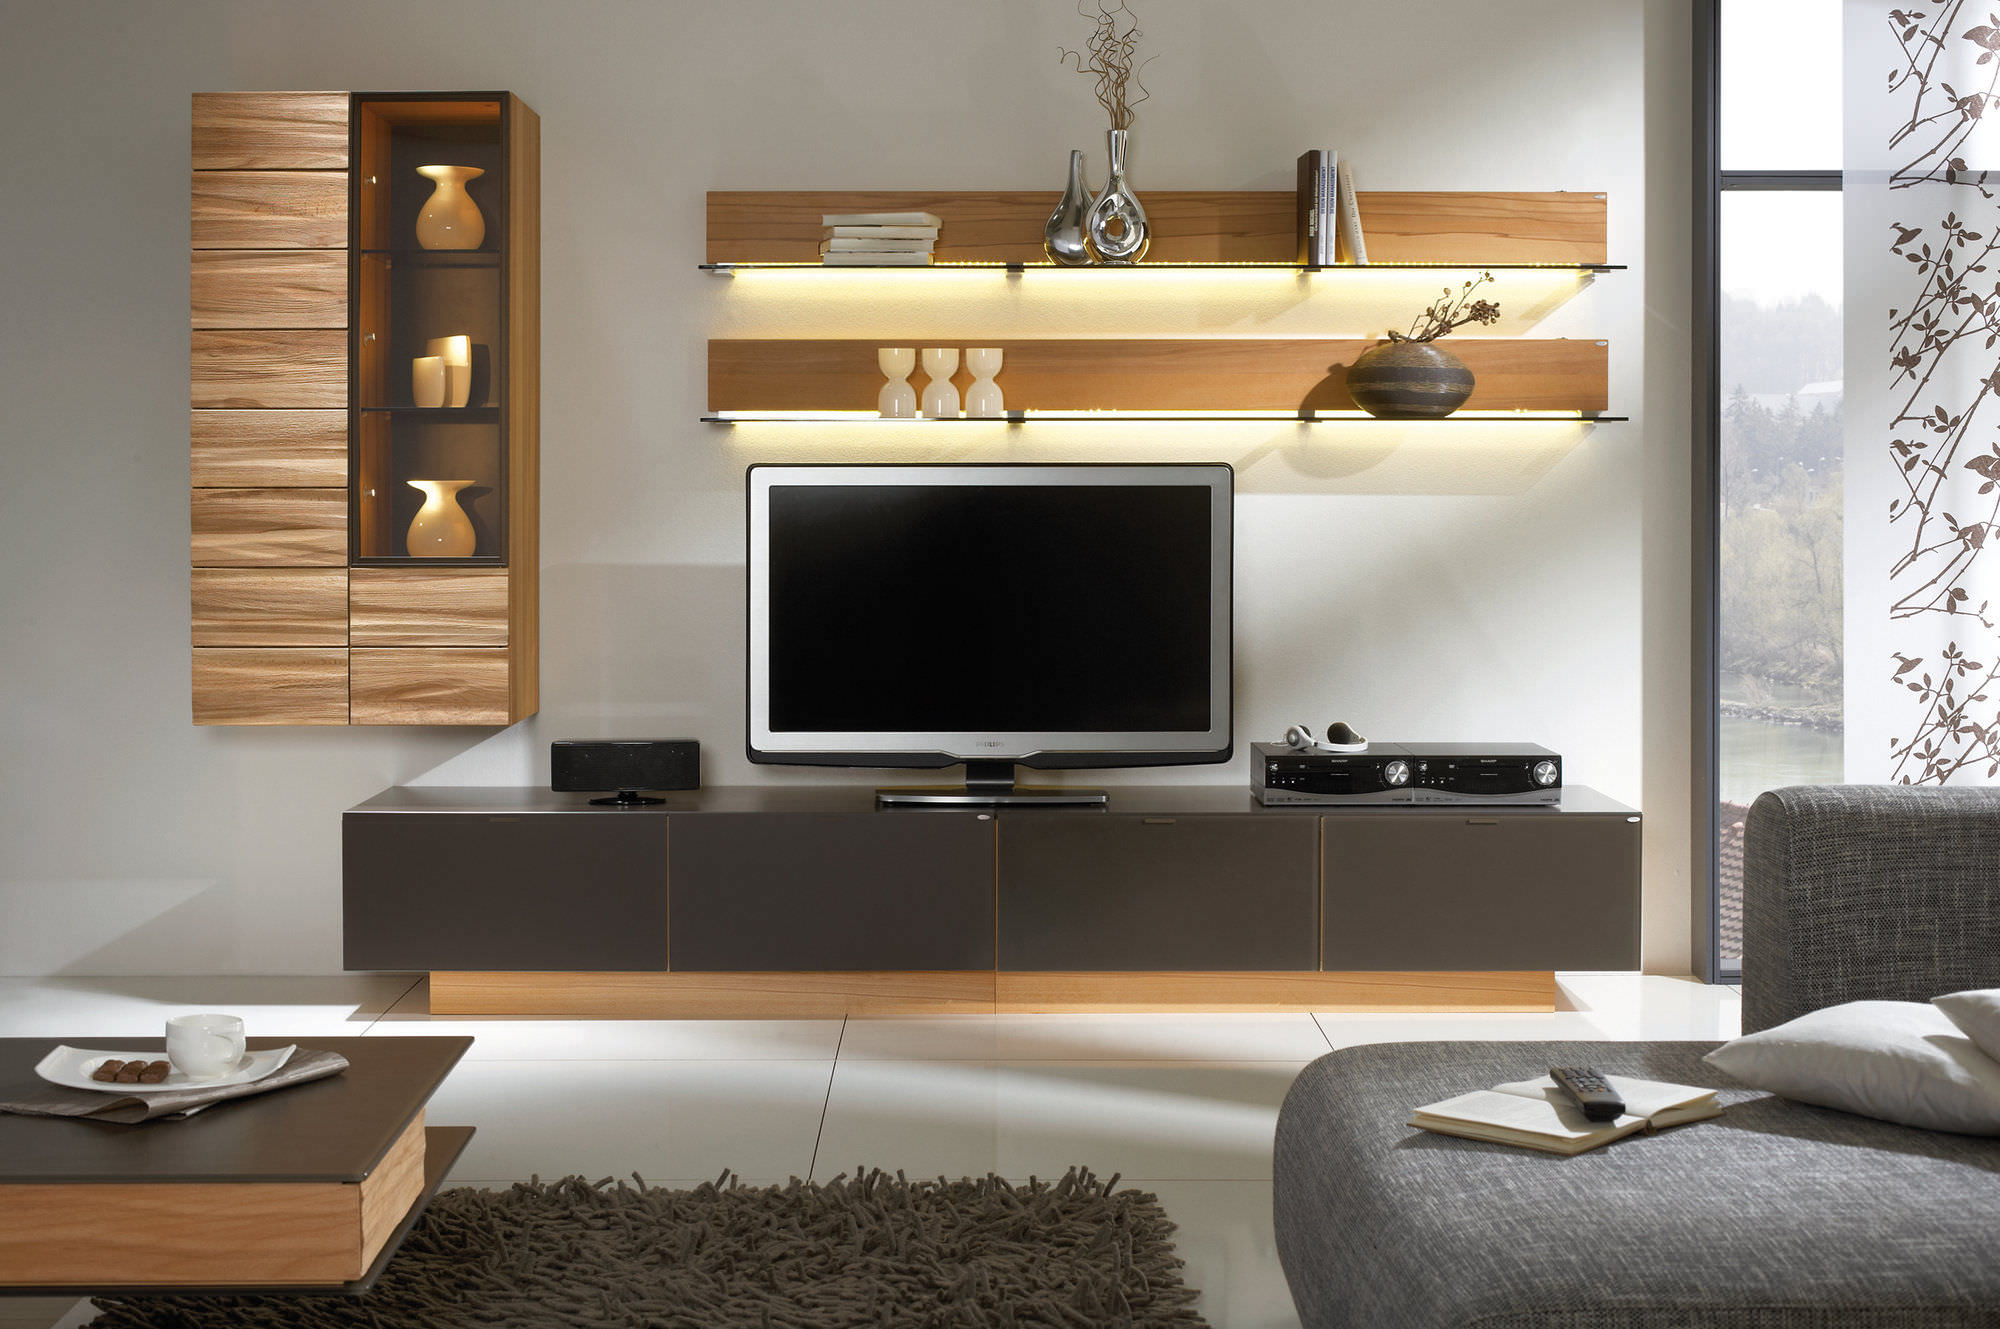 Colour Scheme Designer 20 Modern Tv Unit Design Ideas For Bedroom Amp Living Room